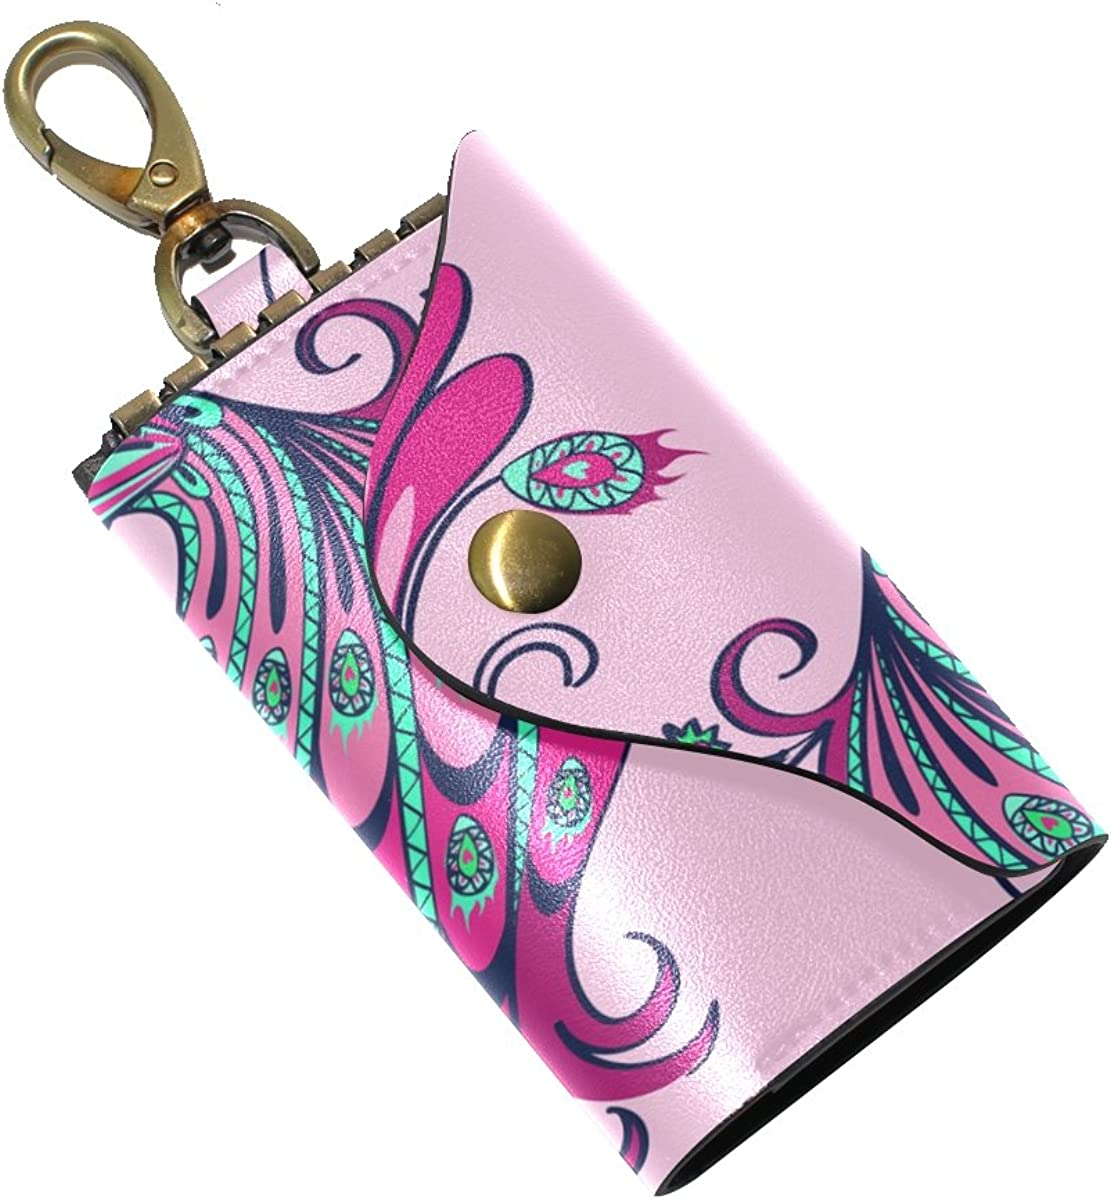 DEYYA Peacock Feather Leather Key Case Wallets Unisex Keychain Key Holder with 6 Hooks Snap Closure